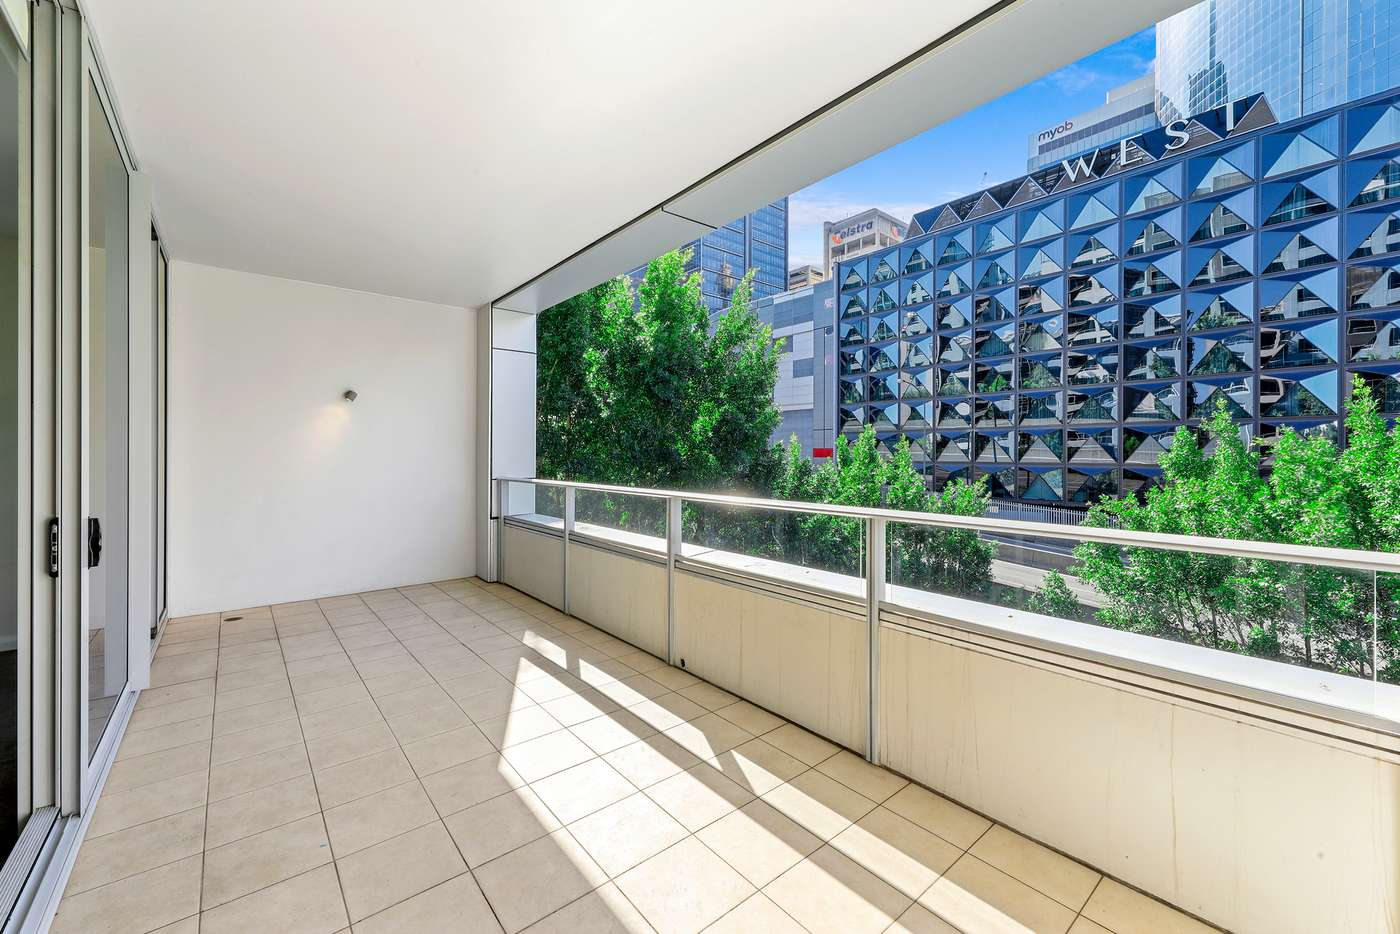 Main view of Homely apartment listing, 414/35 Shelley Street, Sydney NSW 2000